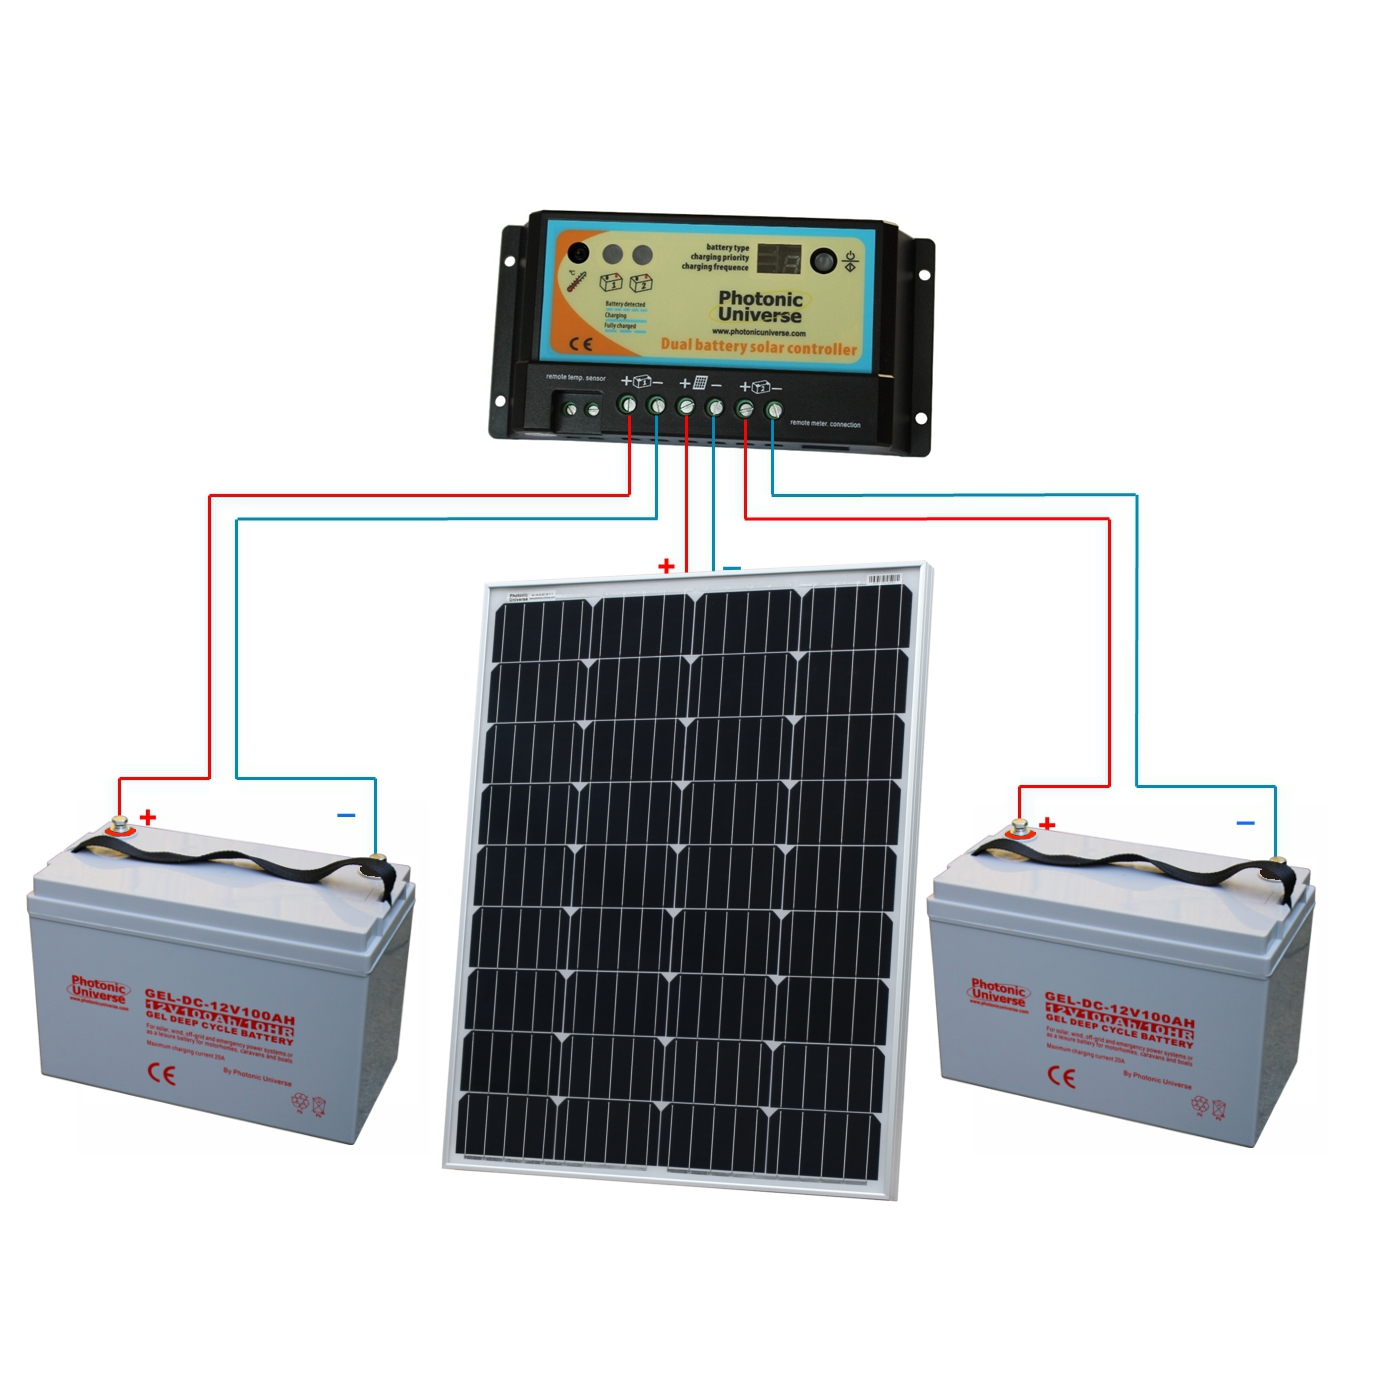 Wiring Diagram Caravan Solar Panel 12v Panels Charging Kits For Caravans Motorhomes Boats Connection 100w Photonic Universe Dual Battery Kit